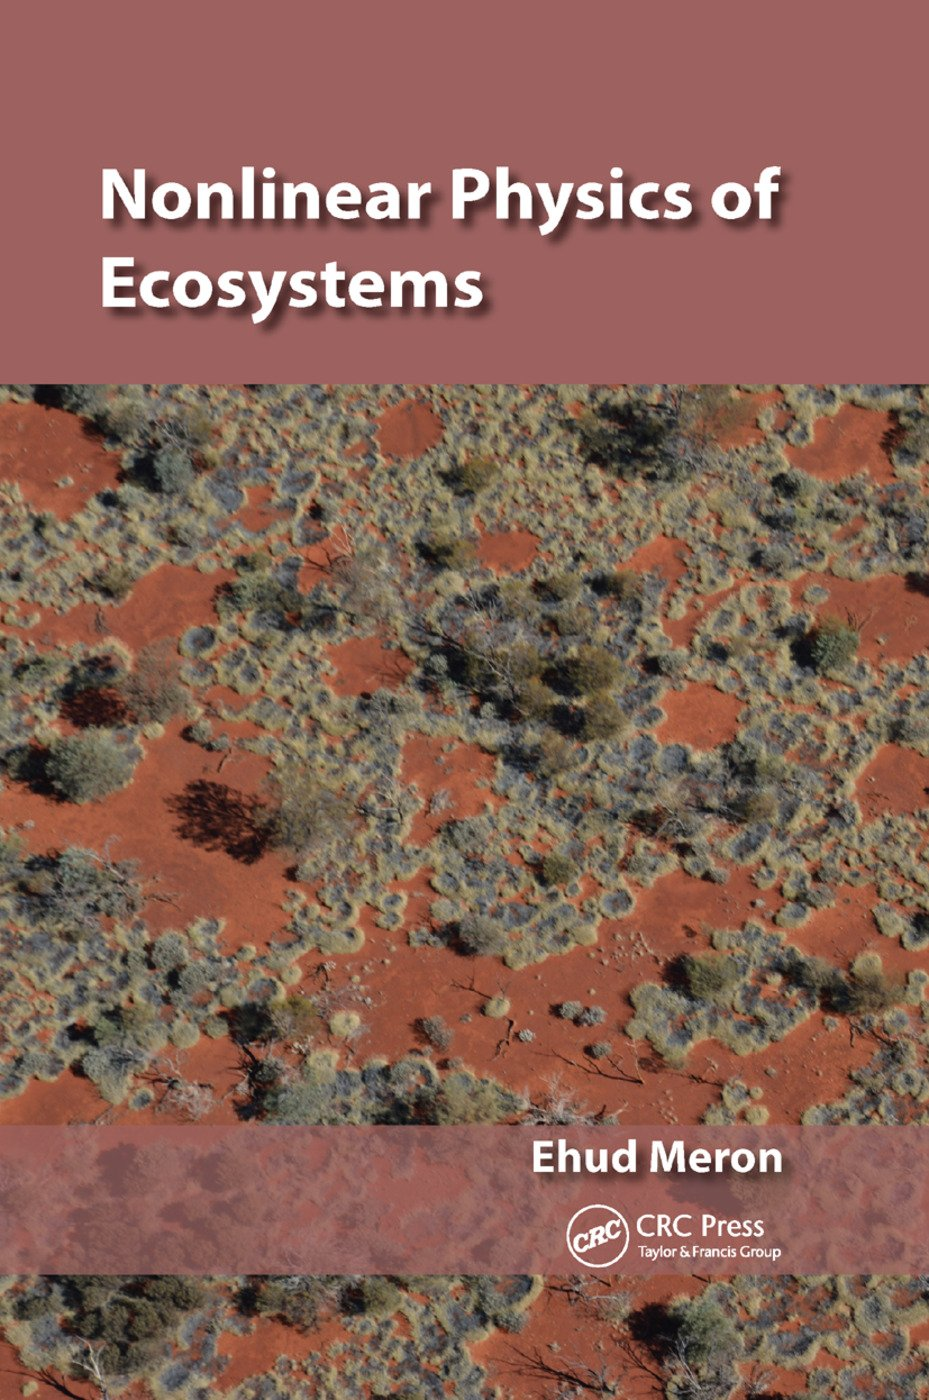 Nonlinear Physics of Ecosystems